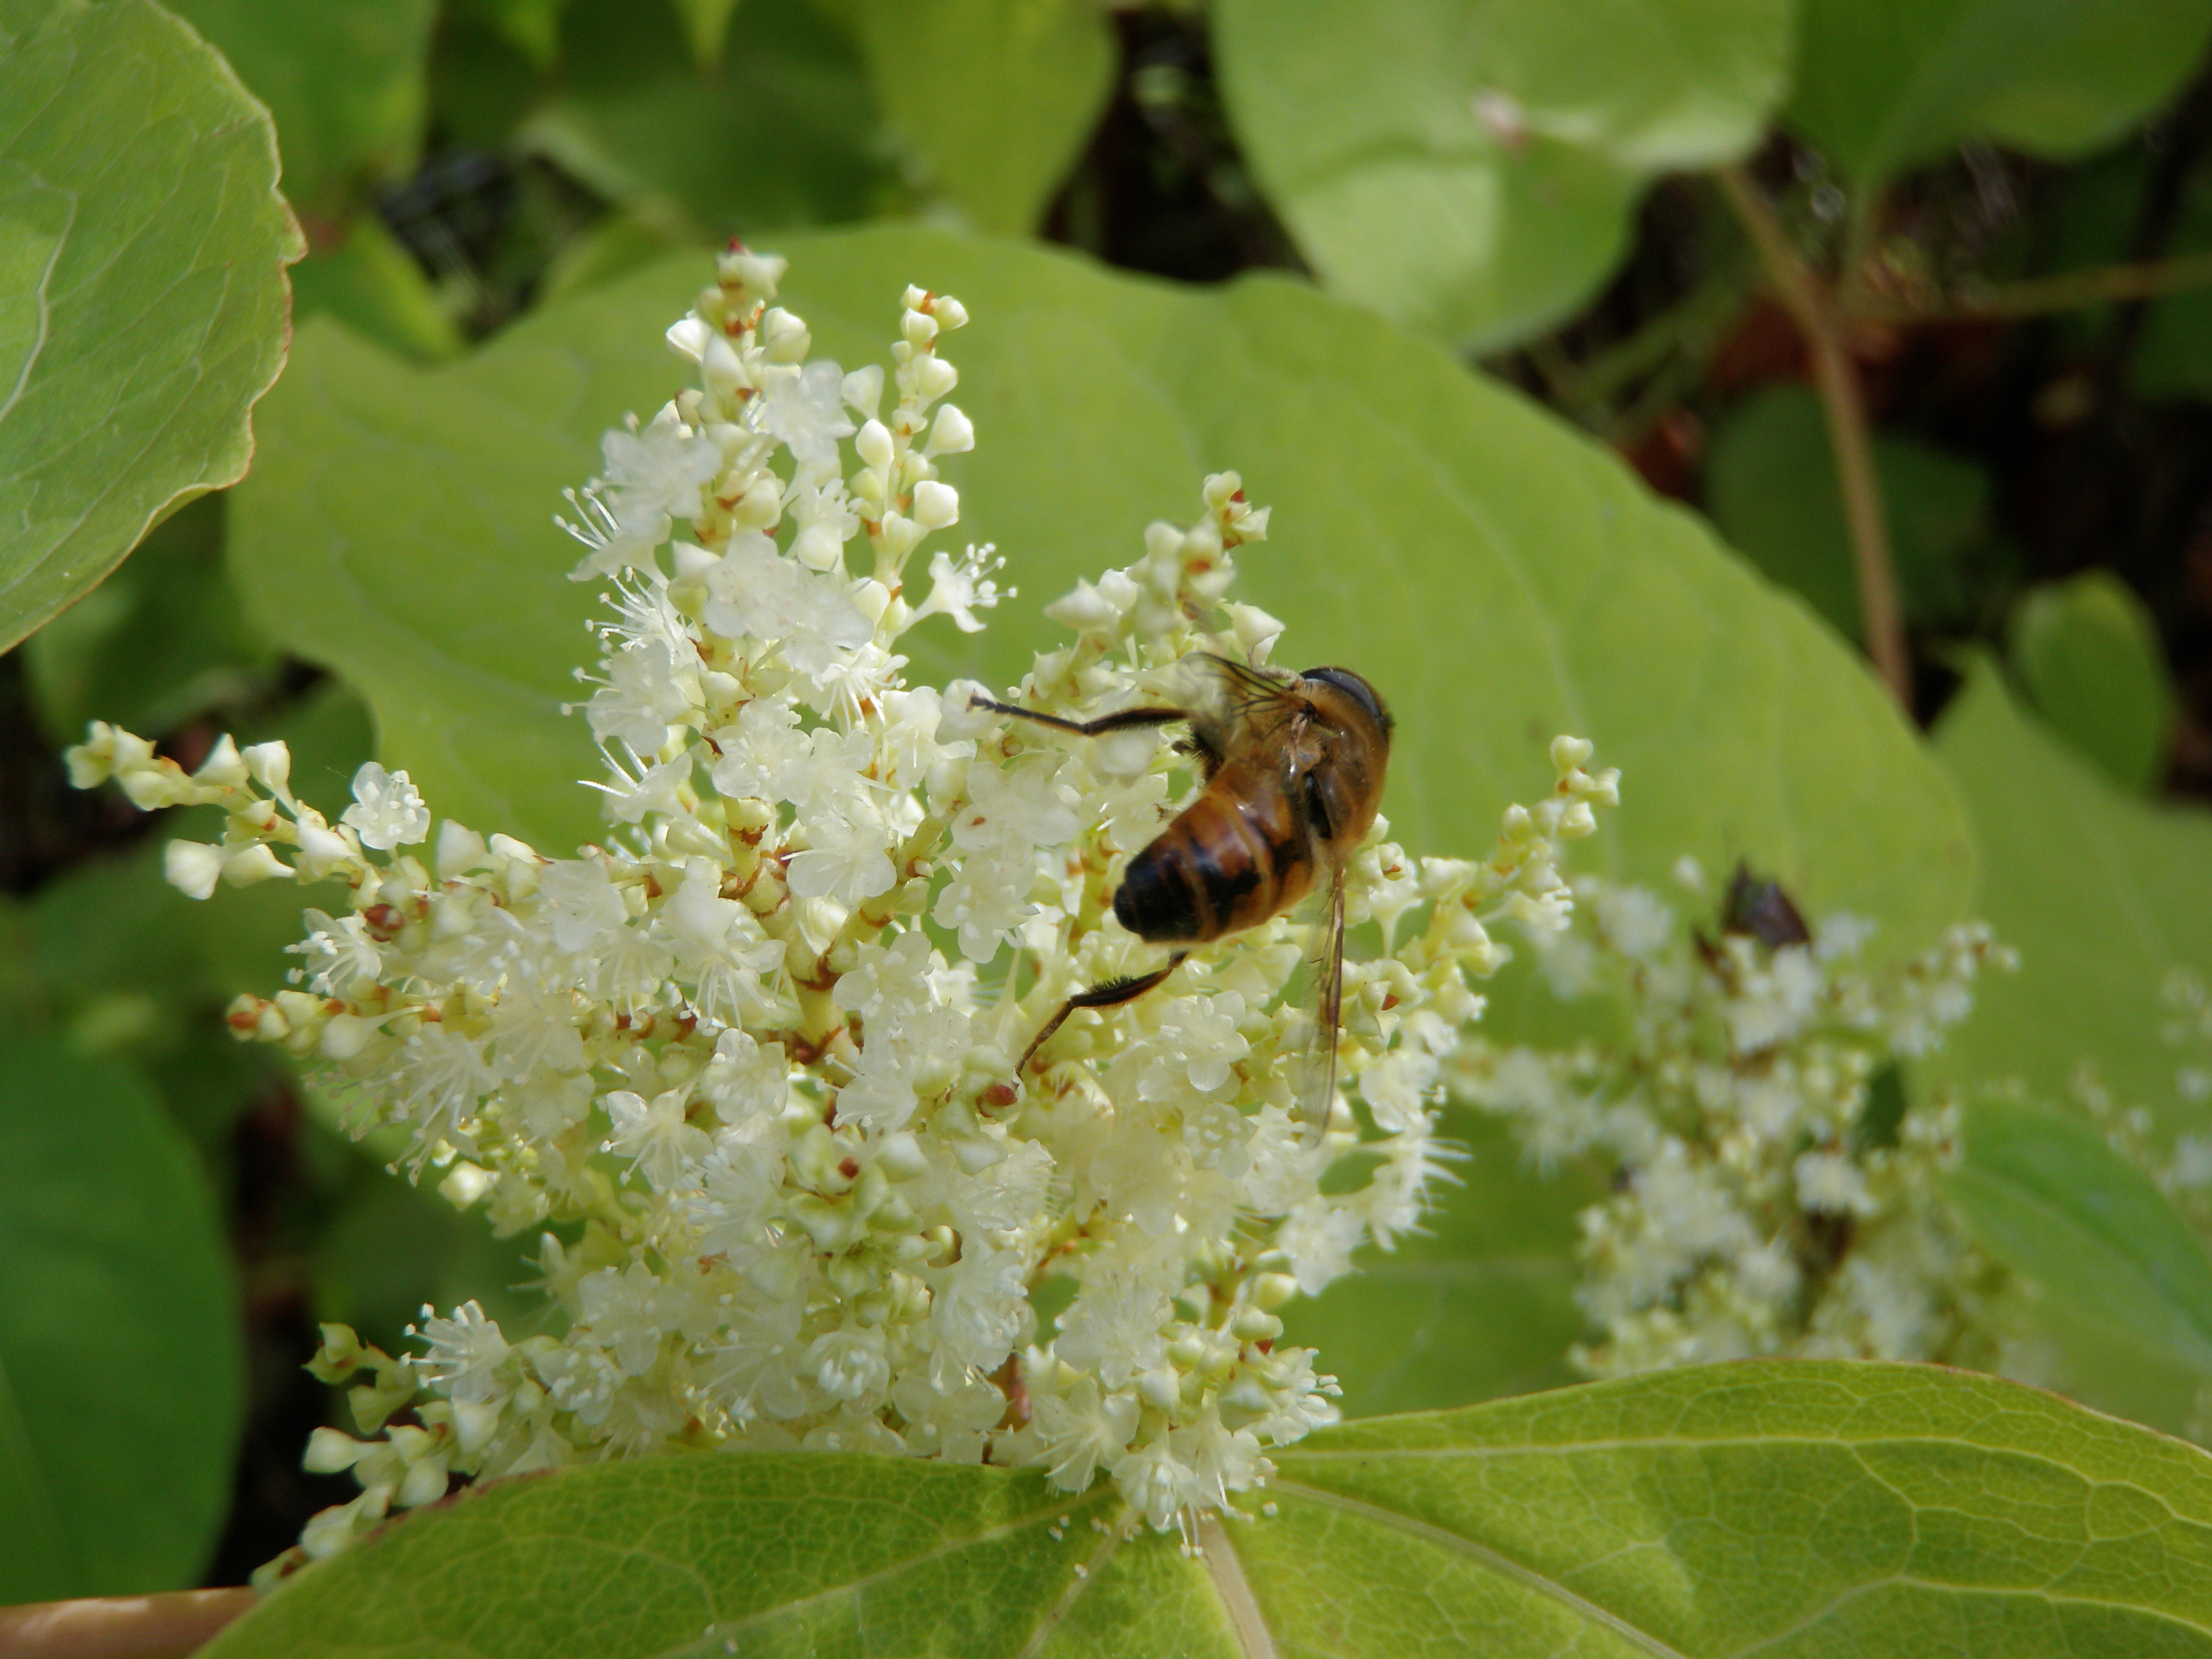 Fallopia japonica (Japanese knotweed) ssisc